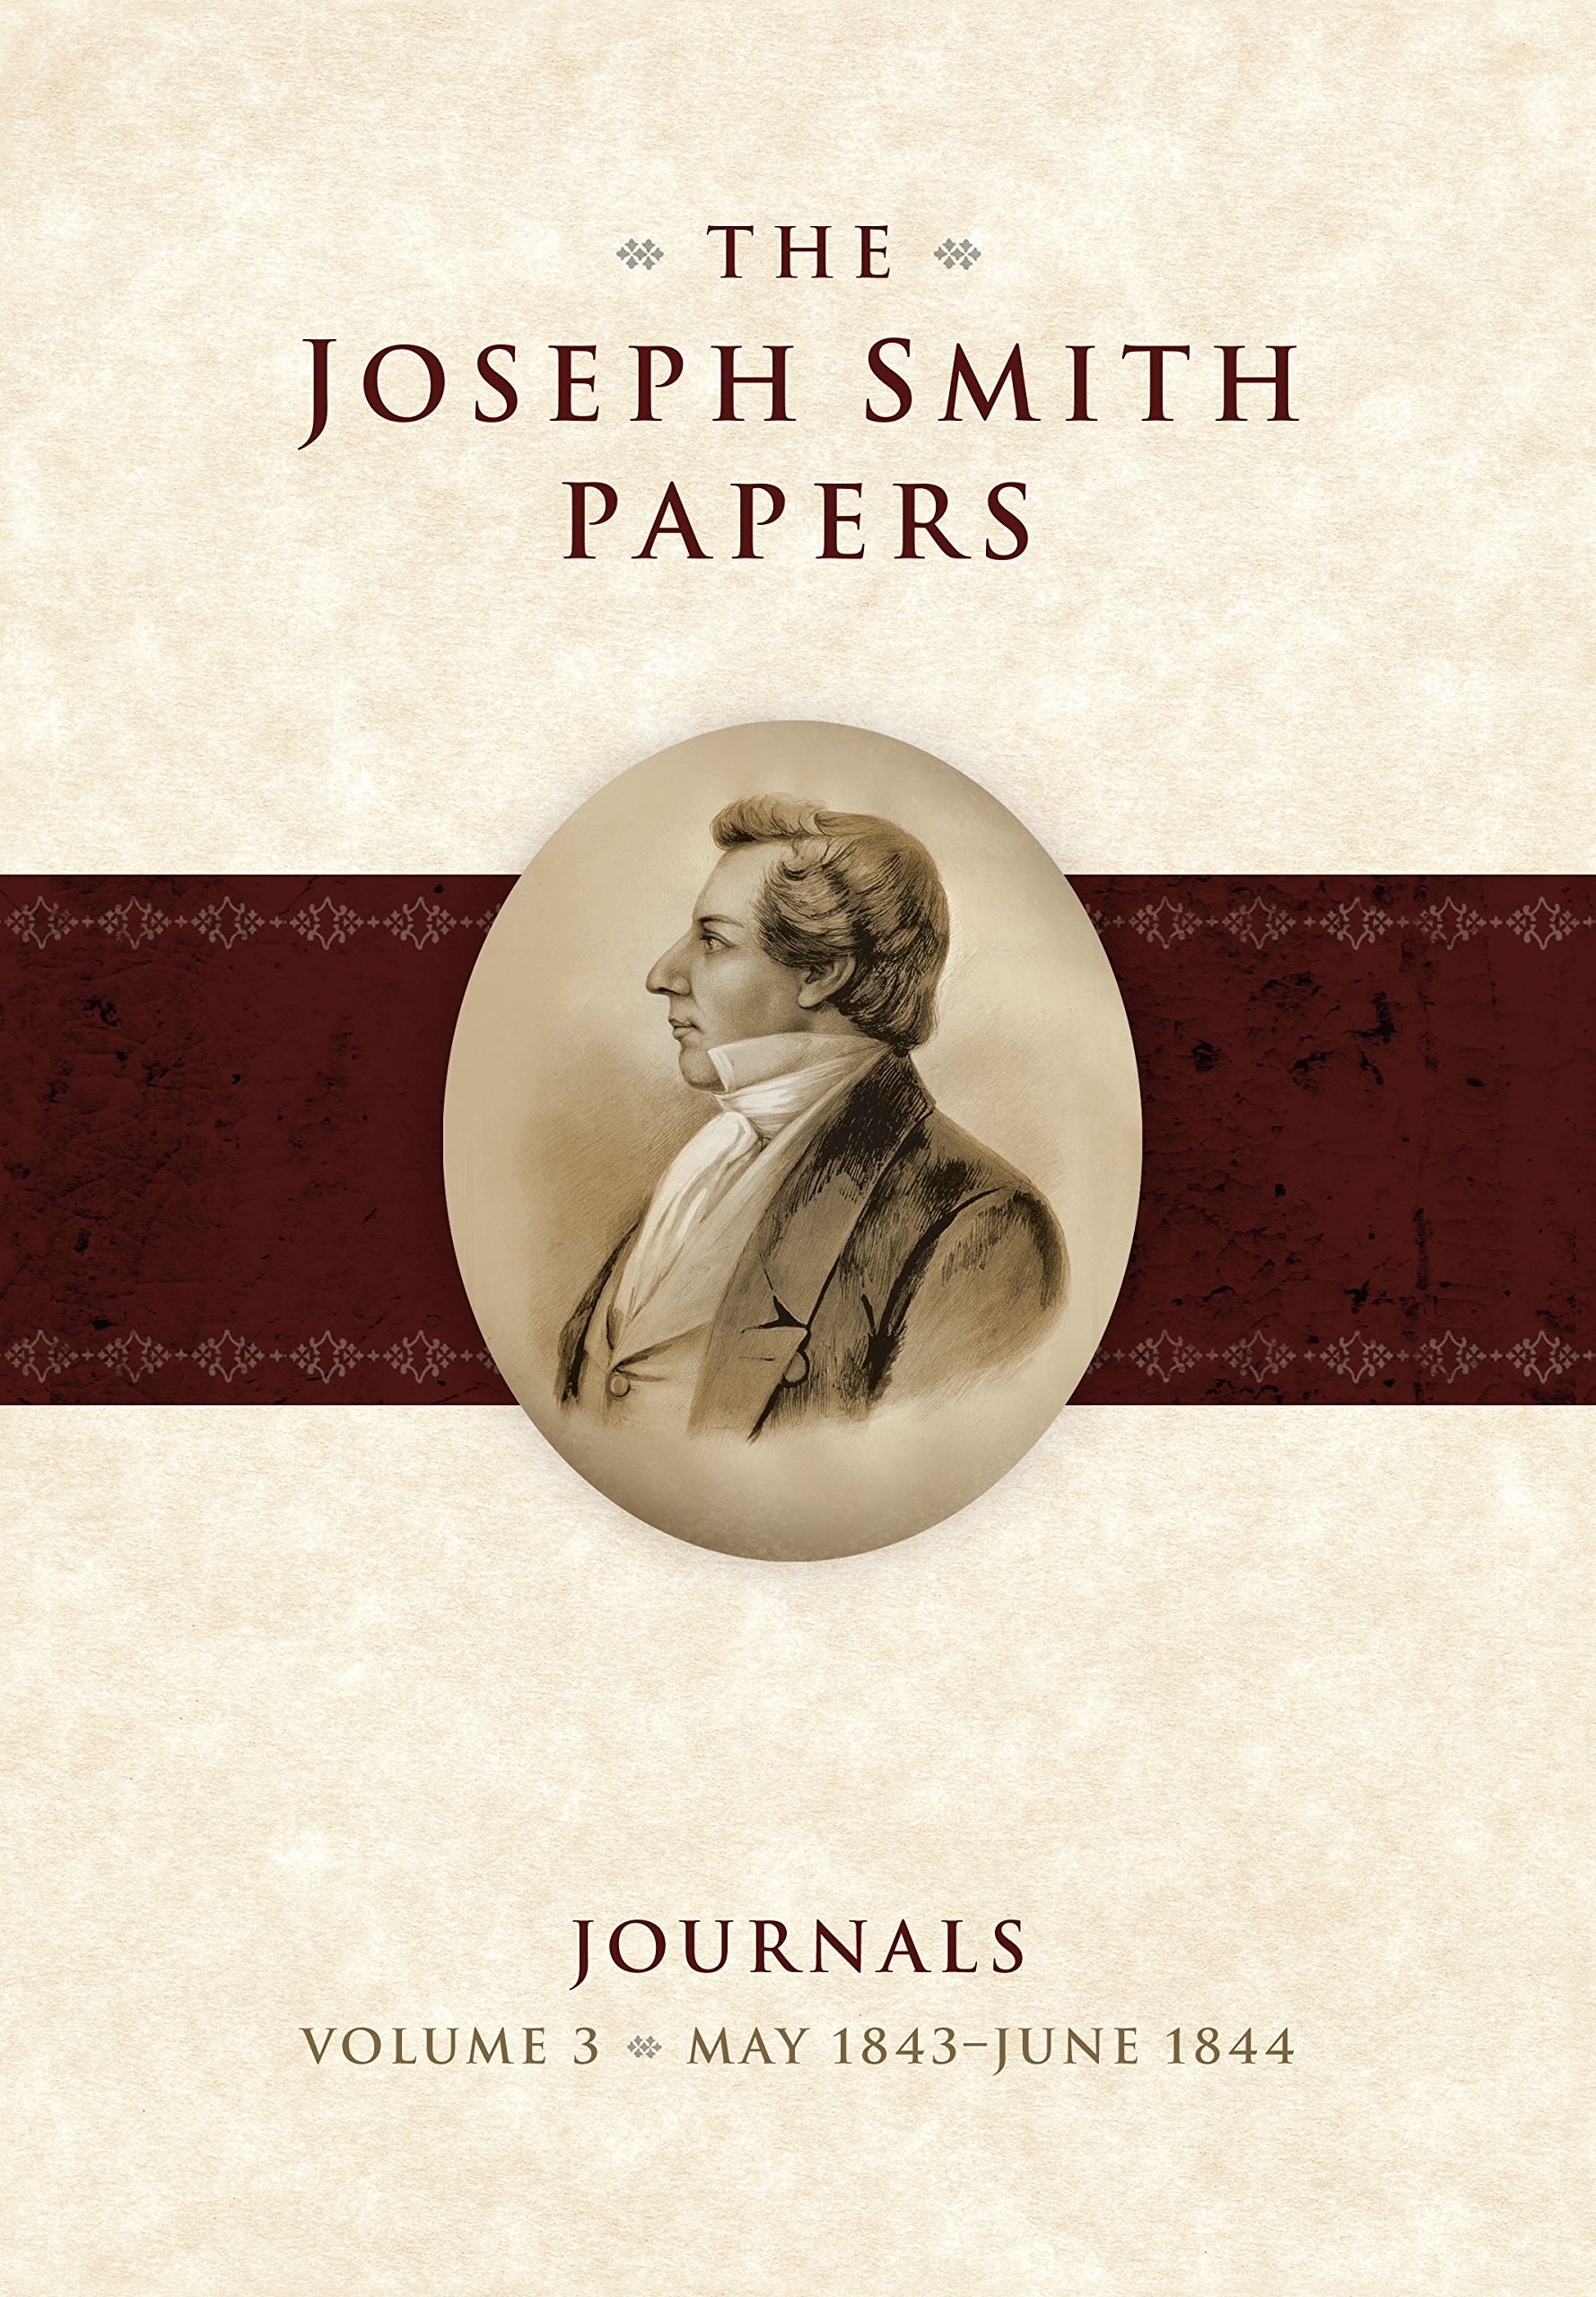 Image for The Joseph Smith Papers - Journals Volume 3: May 1843 - June 1844